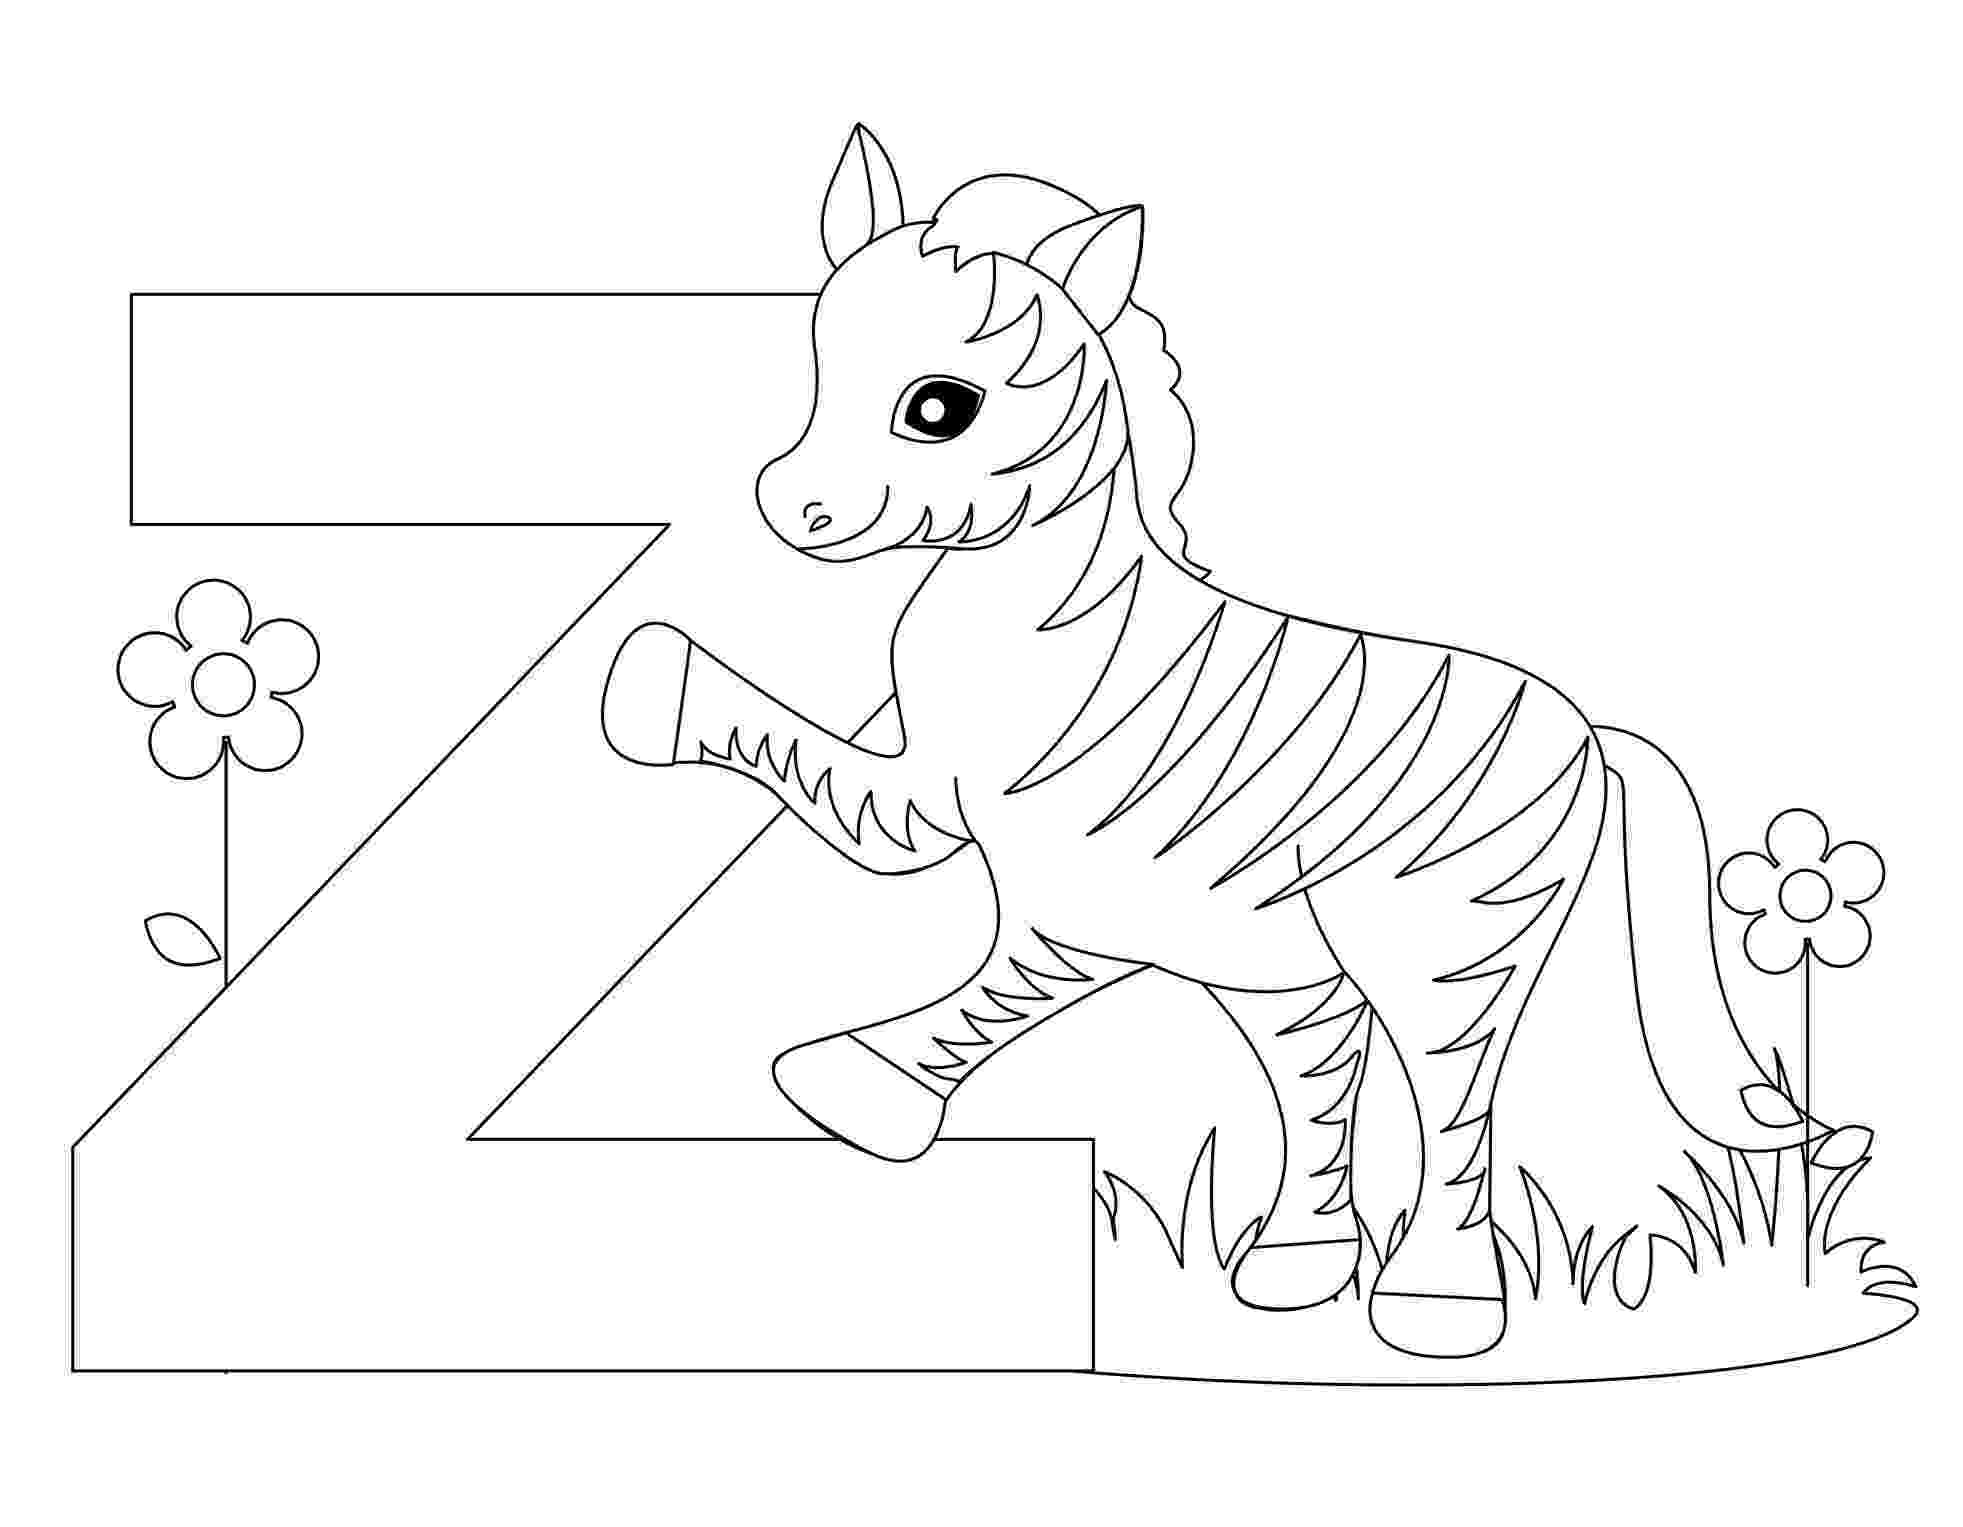 printable coloring book letters free printable alphabet coloring pages for kids best printable letters coloring book